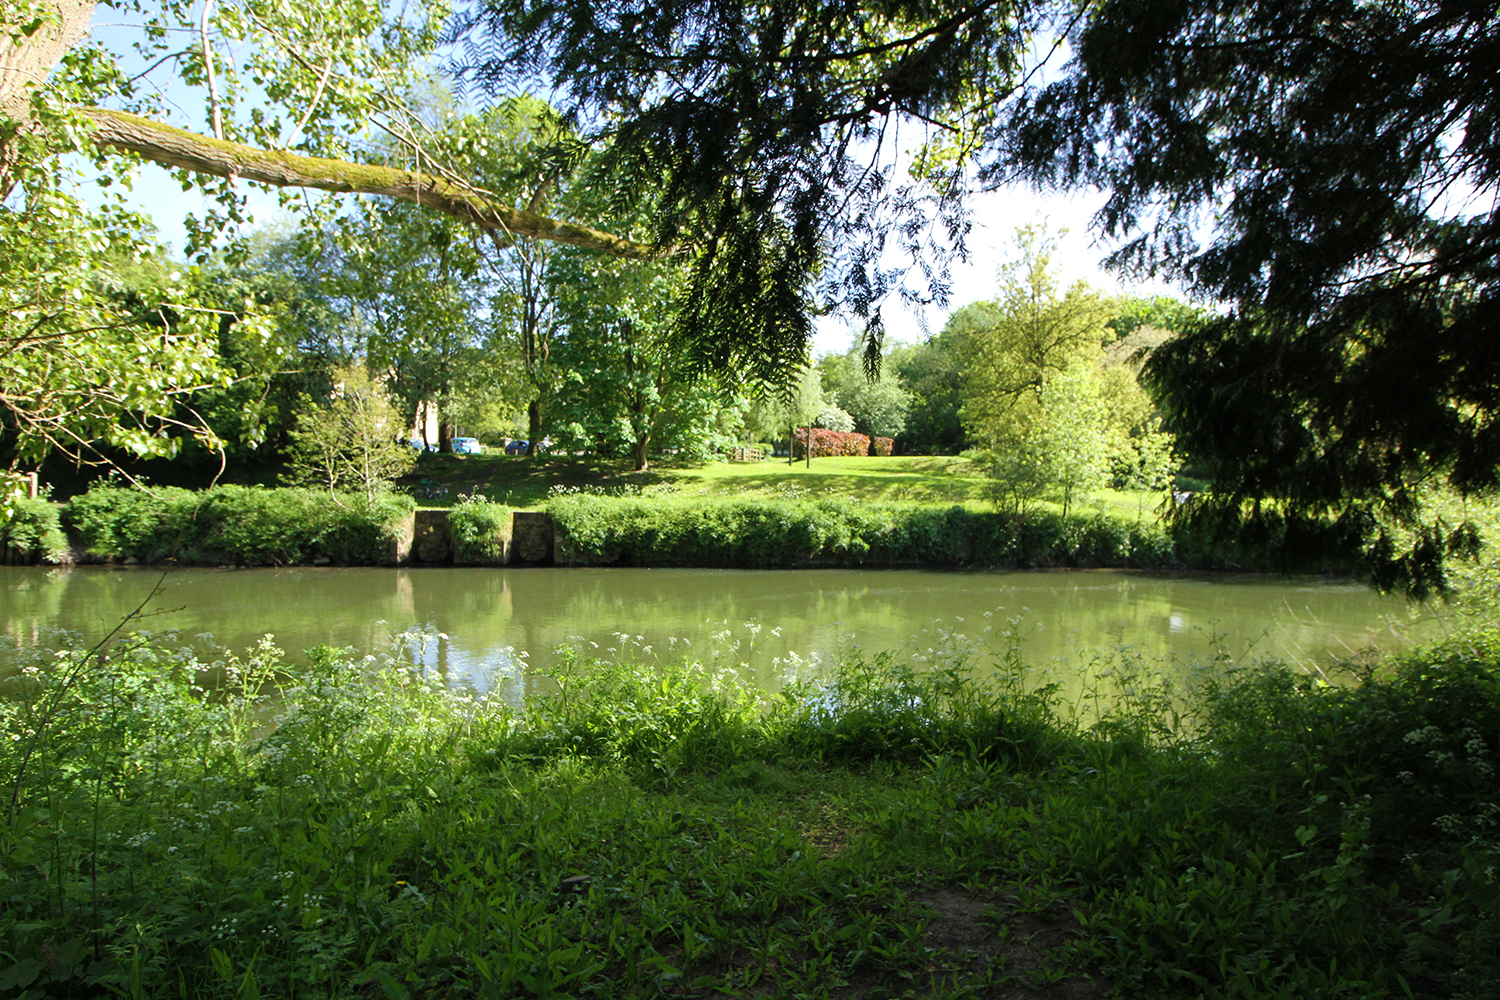 image of the River Avon